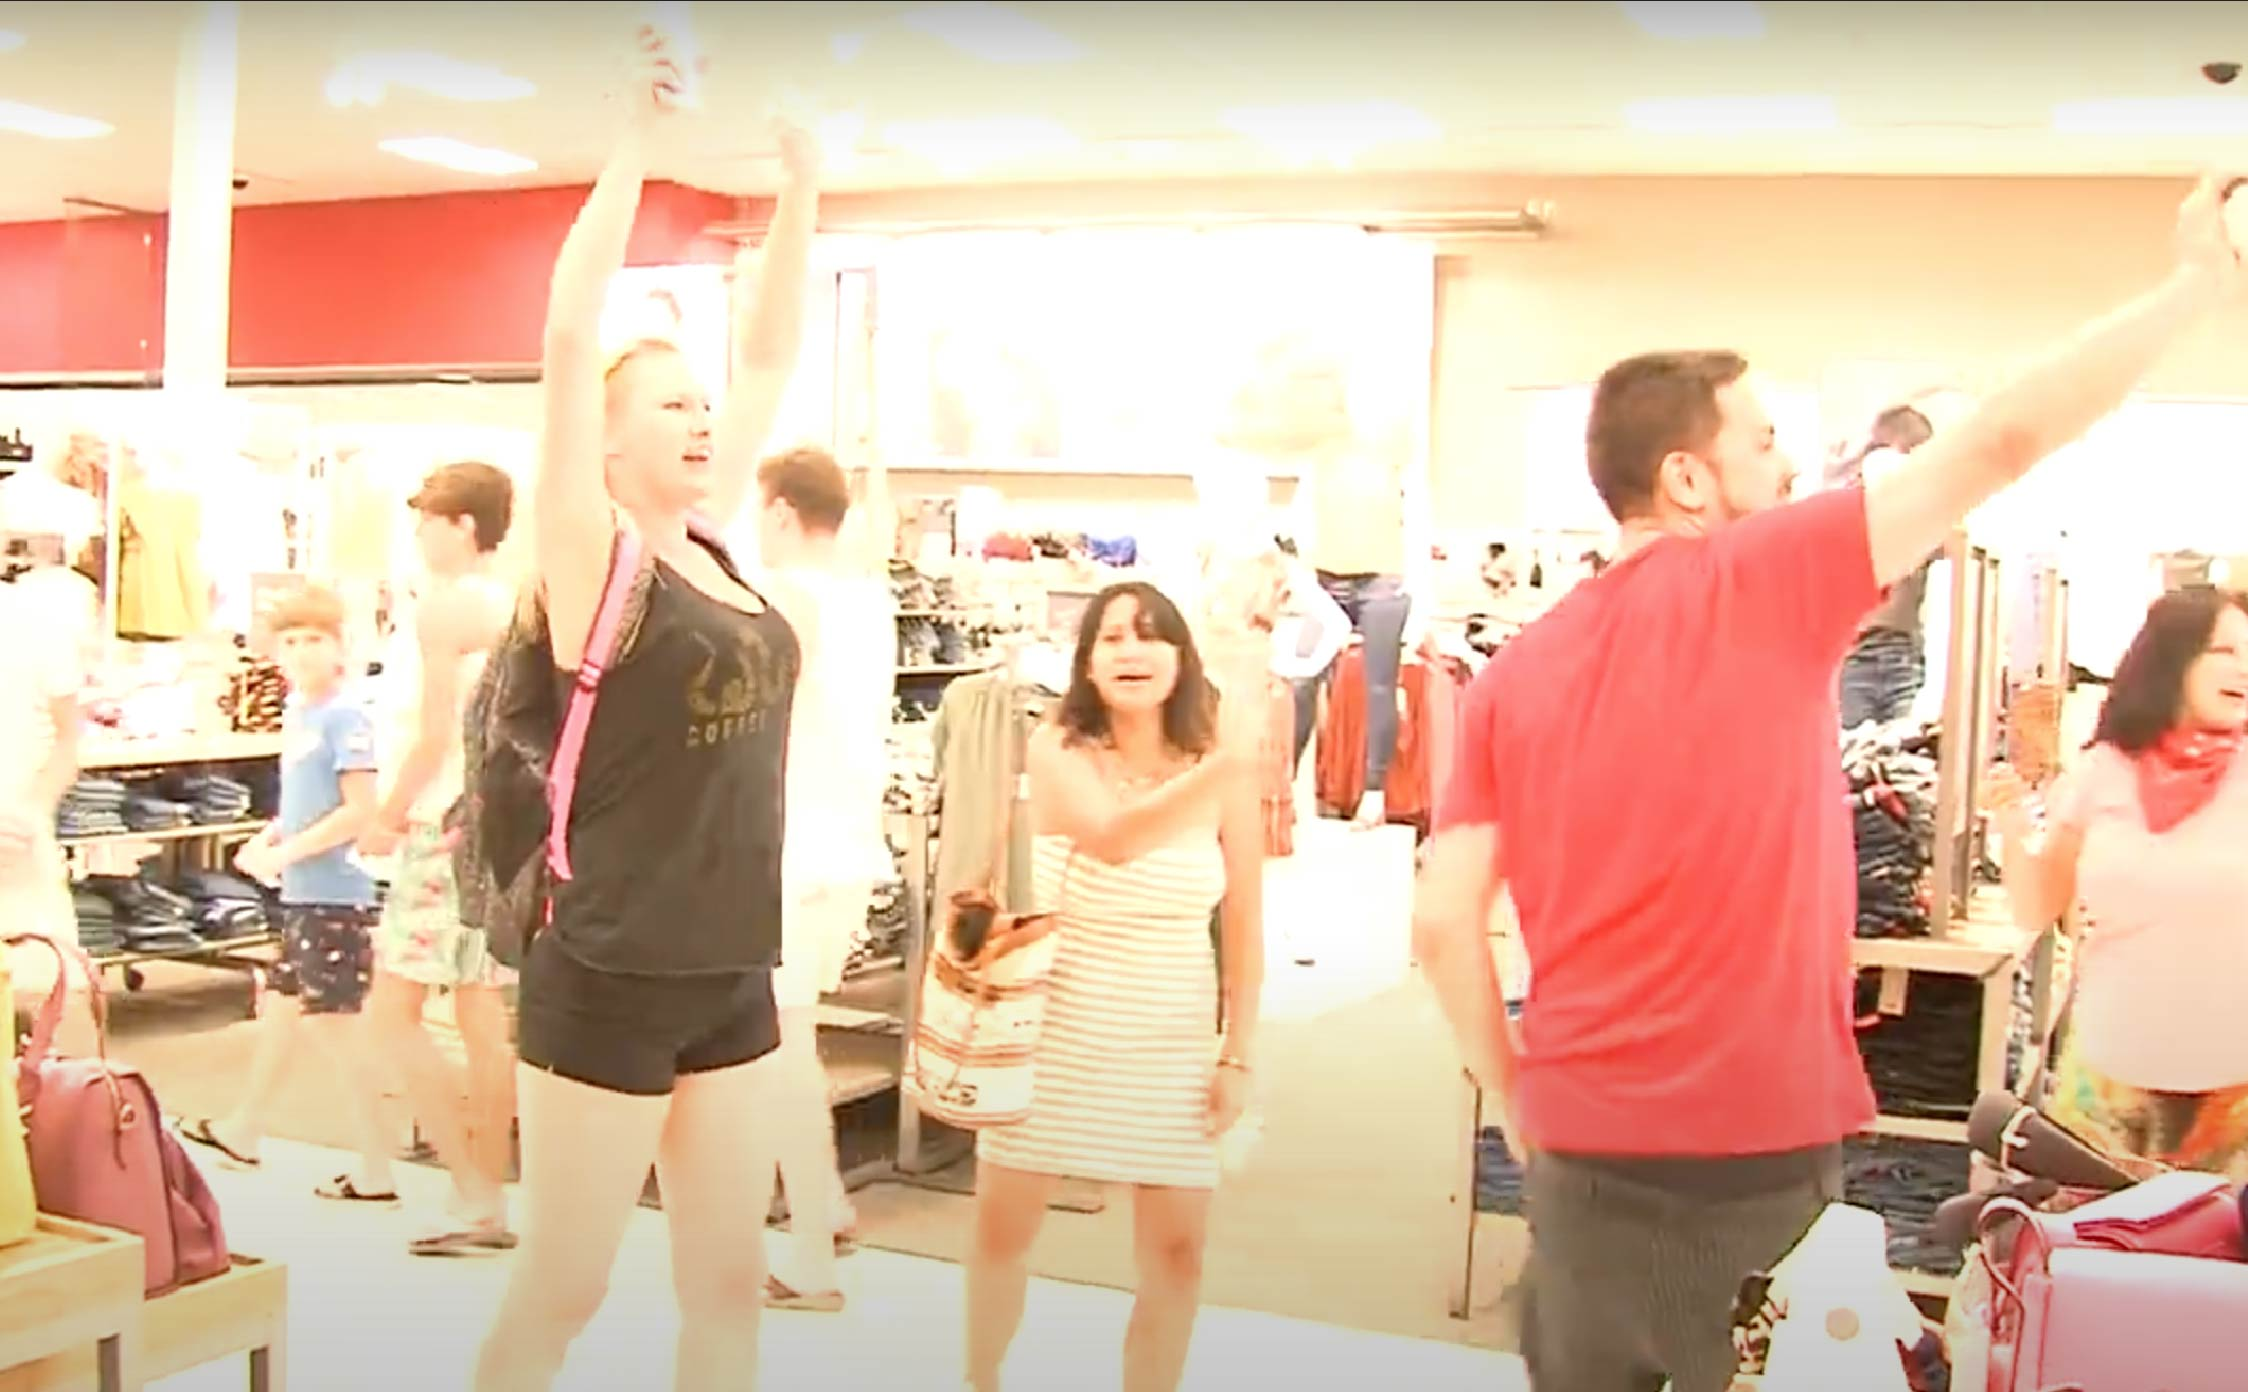 [WATCH] Anti-Mask Flash Mob Invades Target 'Take Off Your Damn Masks! Now!'